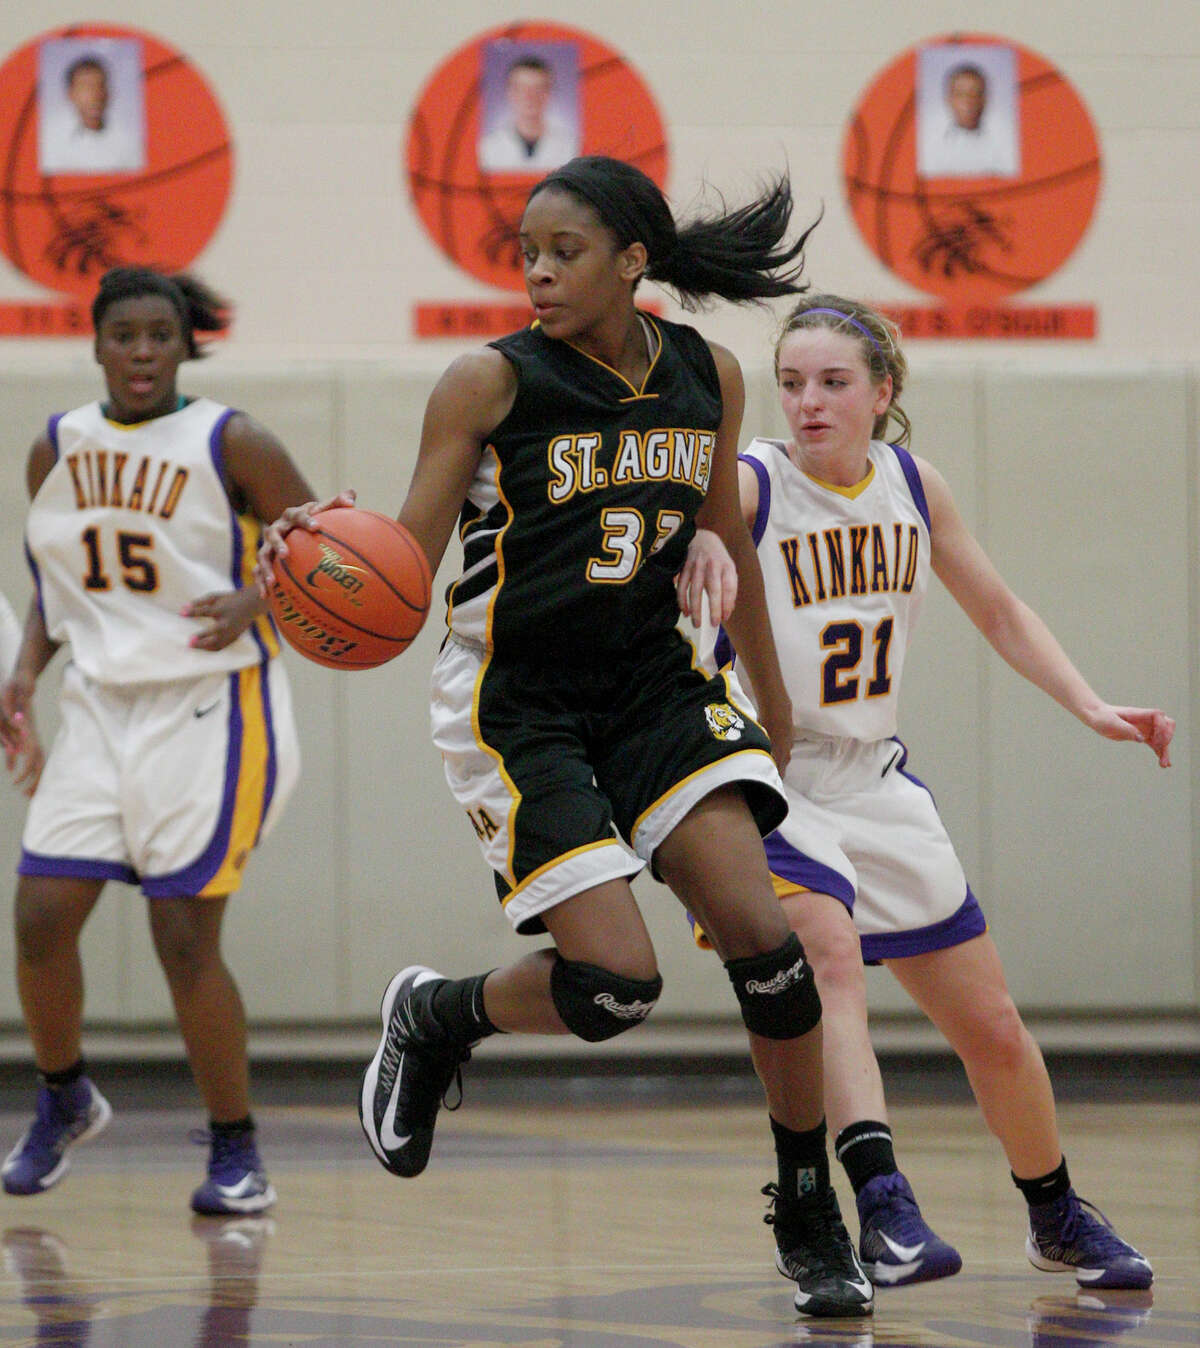 1/8/12: St Agnes Tigers Michelle Nwokedi (33) spins and dribbles around Kinkaid Falcons Maddie Holmes (21) in the second half at Kinkiad High School in Houston, Texas.